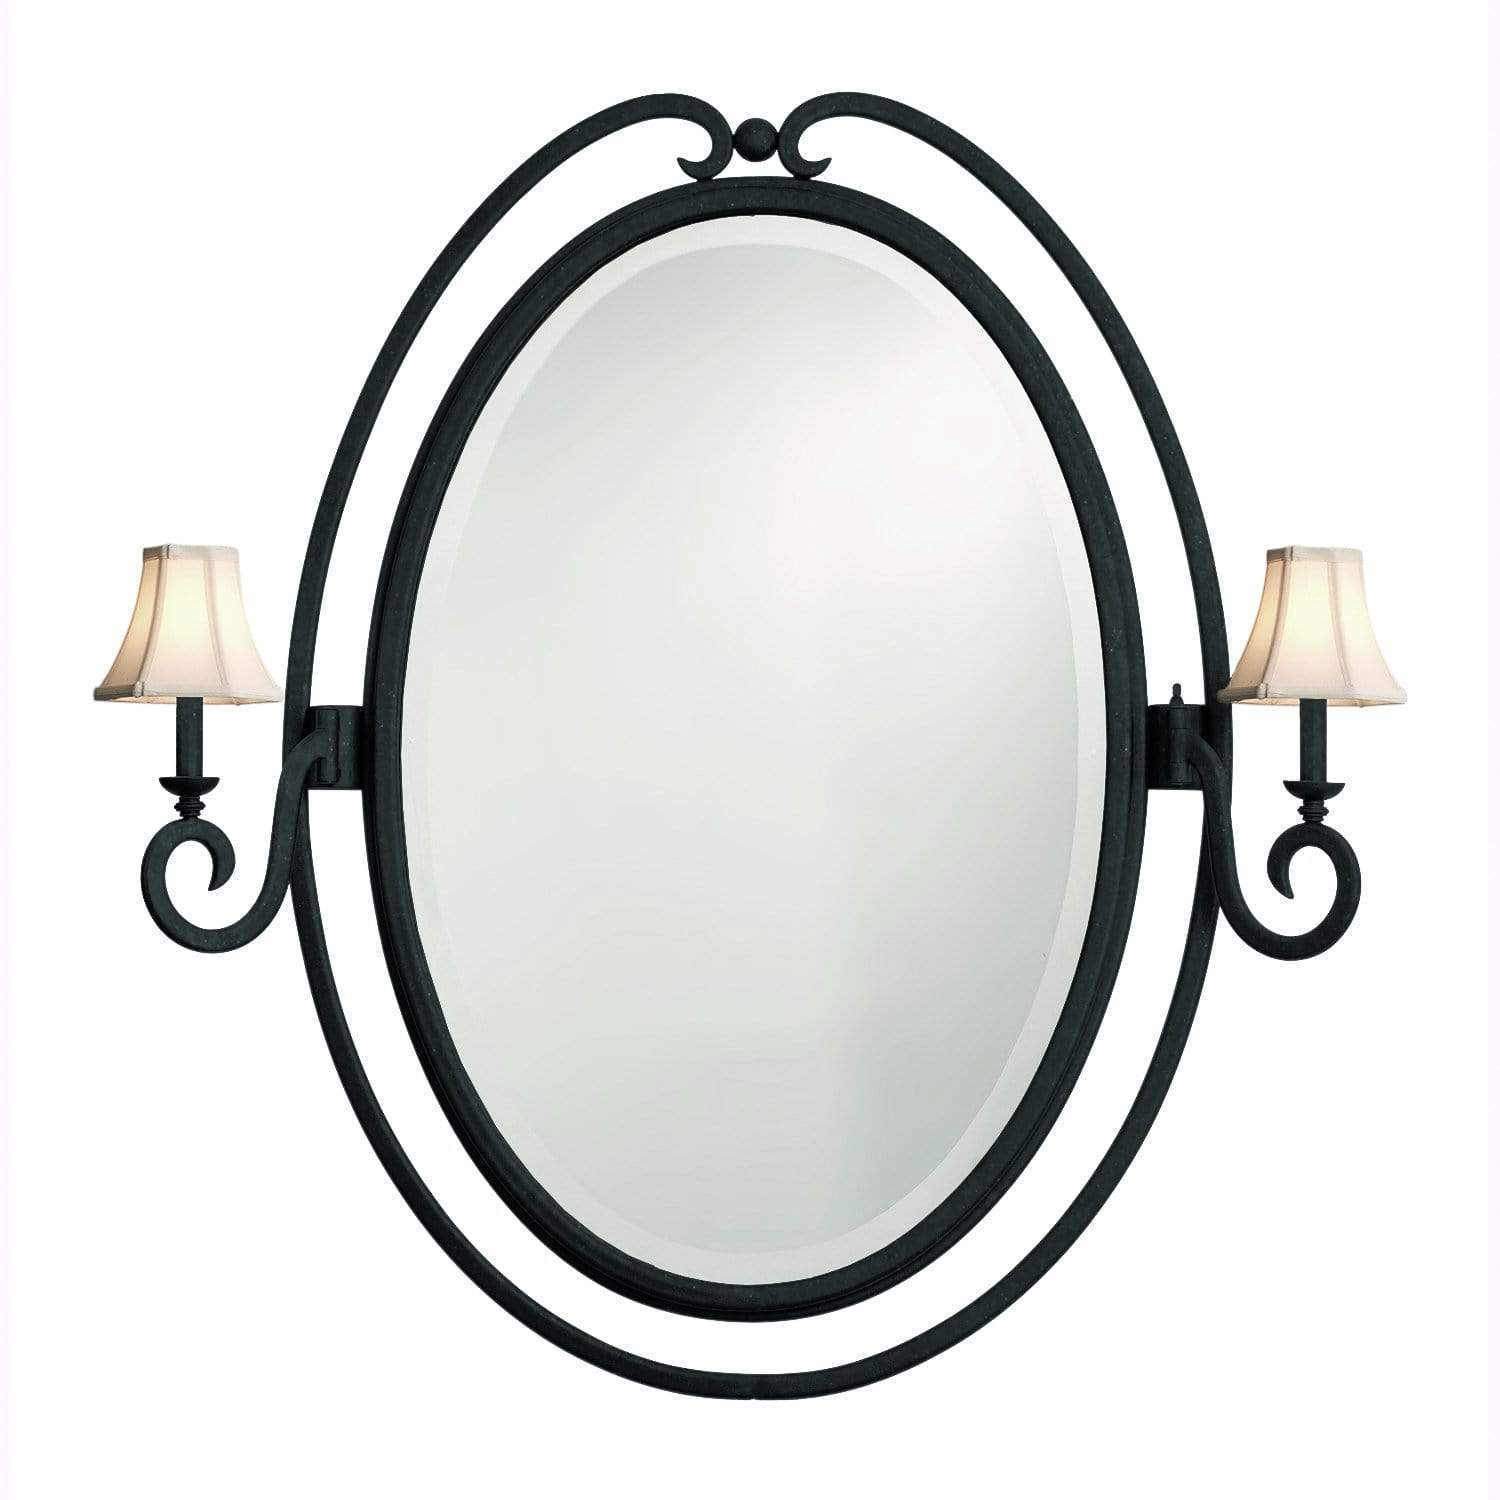 Kalco Lighting Mirrors Black / Small Silk Bell Shade Santa Barbara 2 Light Oval Mirror By Kalco Lighting 810